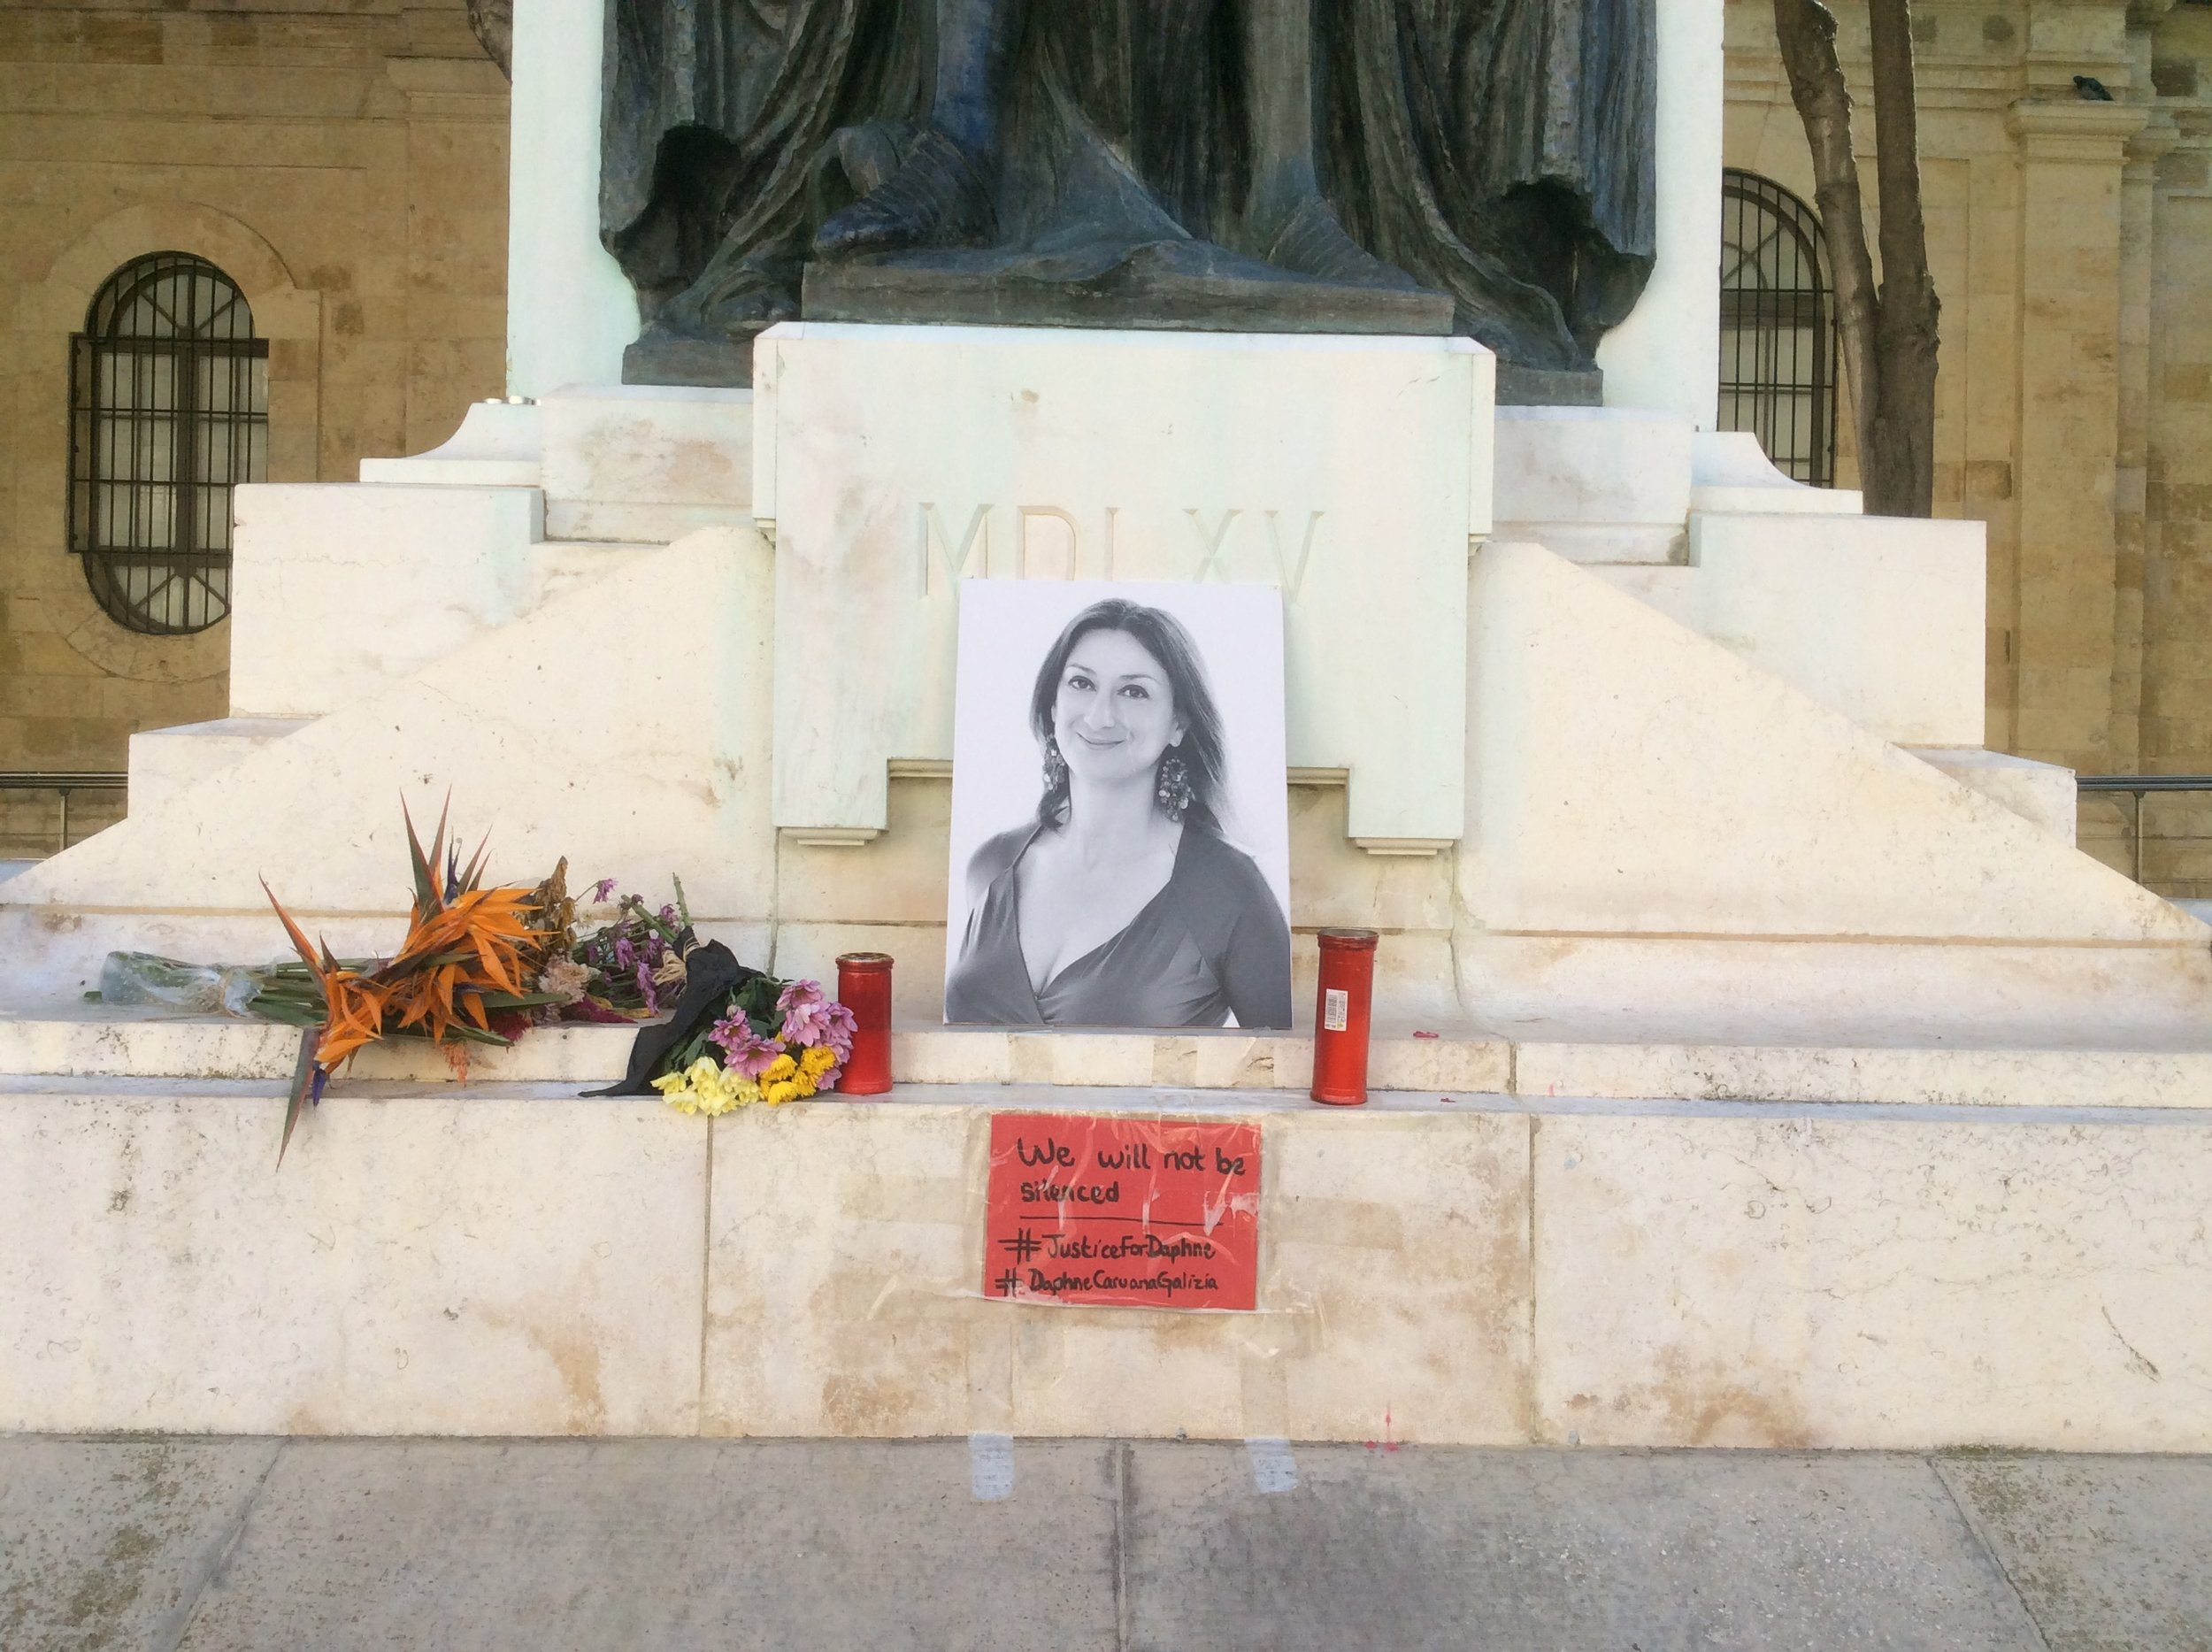 Temporal monument for Daphne Caruana Galizia, the Maltese journalist who died in a car bomb murder. Picture by Wikicommens/Continentaleurope